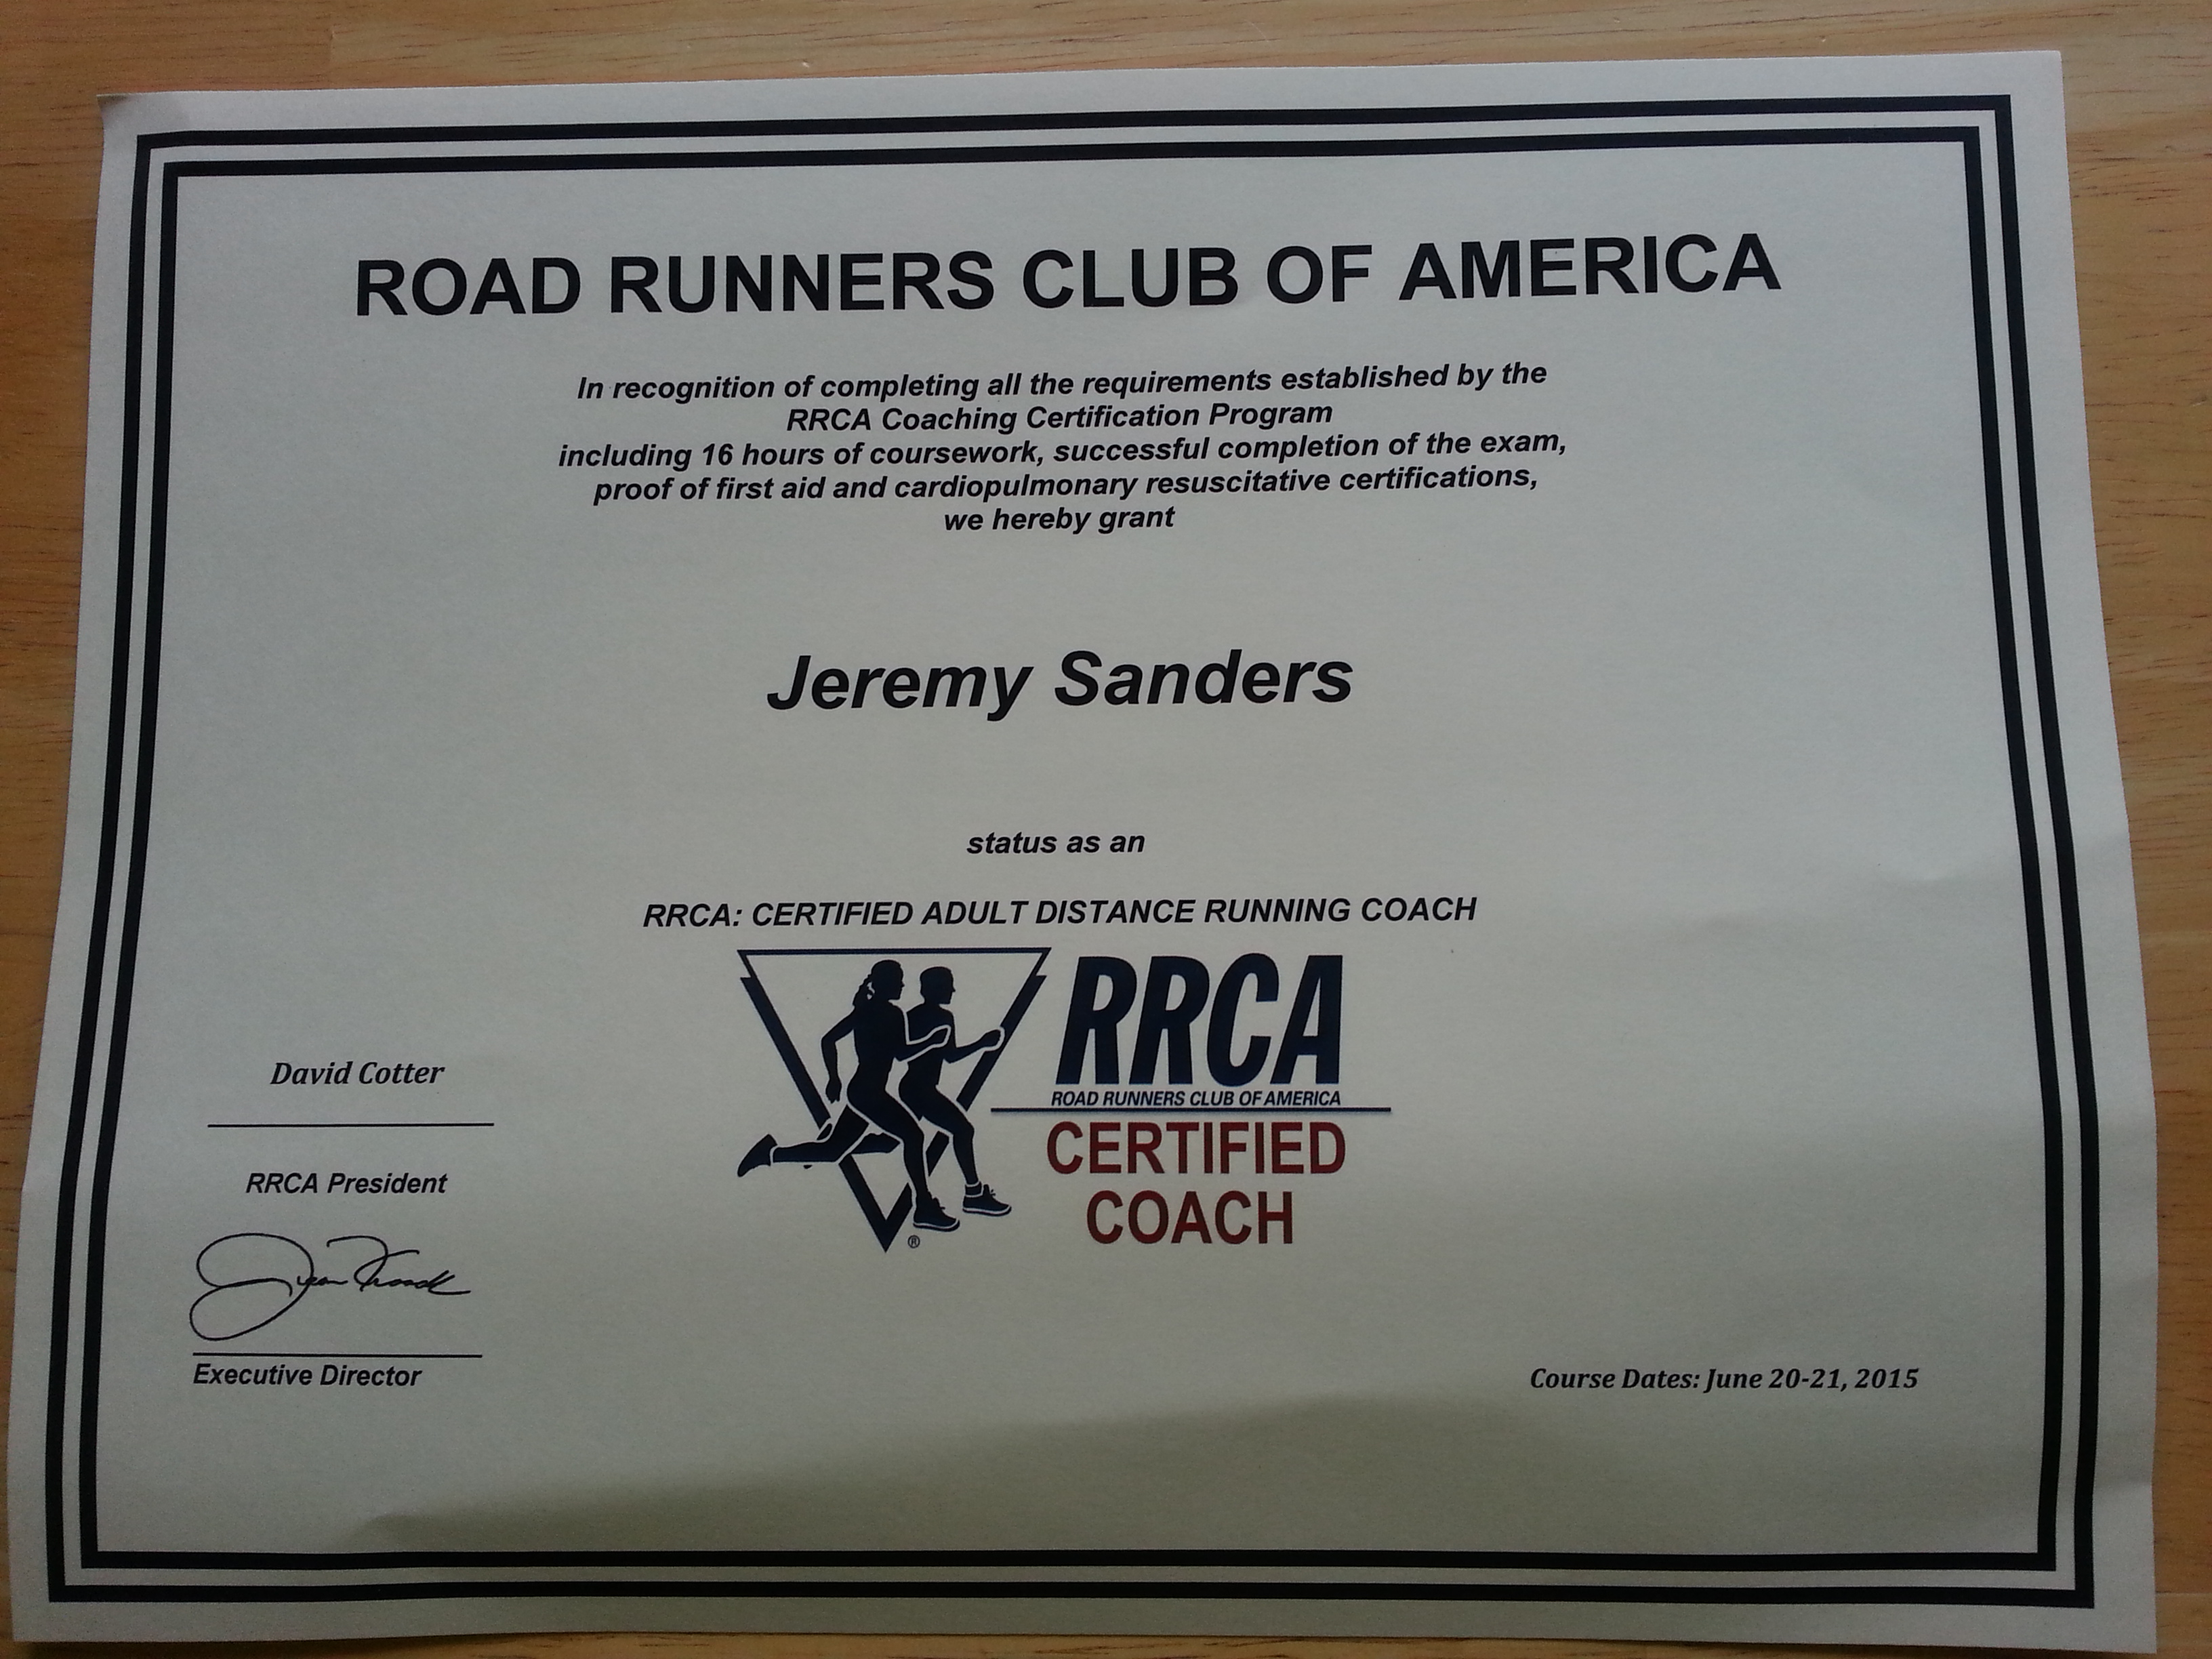 Road runners club of america rrca coaching certification need a running coach im your guy xflitez Choice Image